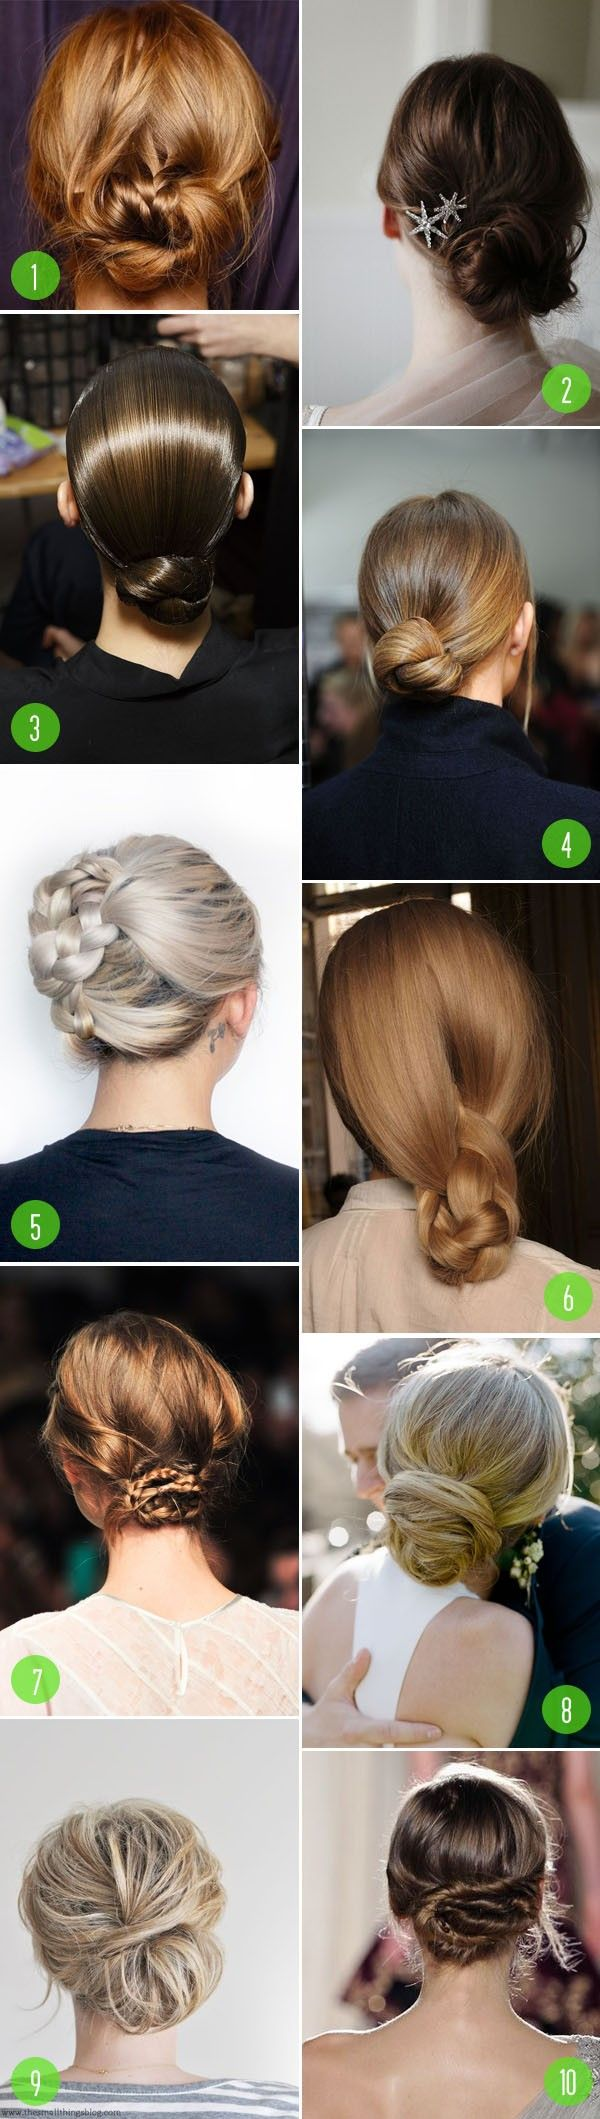 10 Pulled back hairstyles to consider. These are softer and chic alternatives for updos.